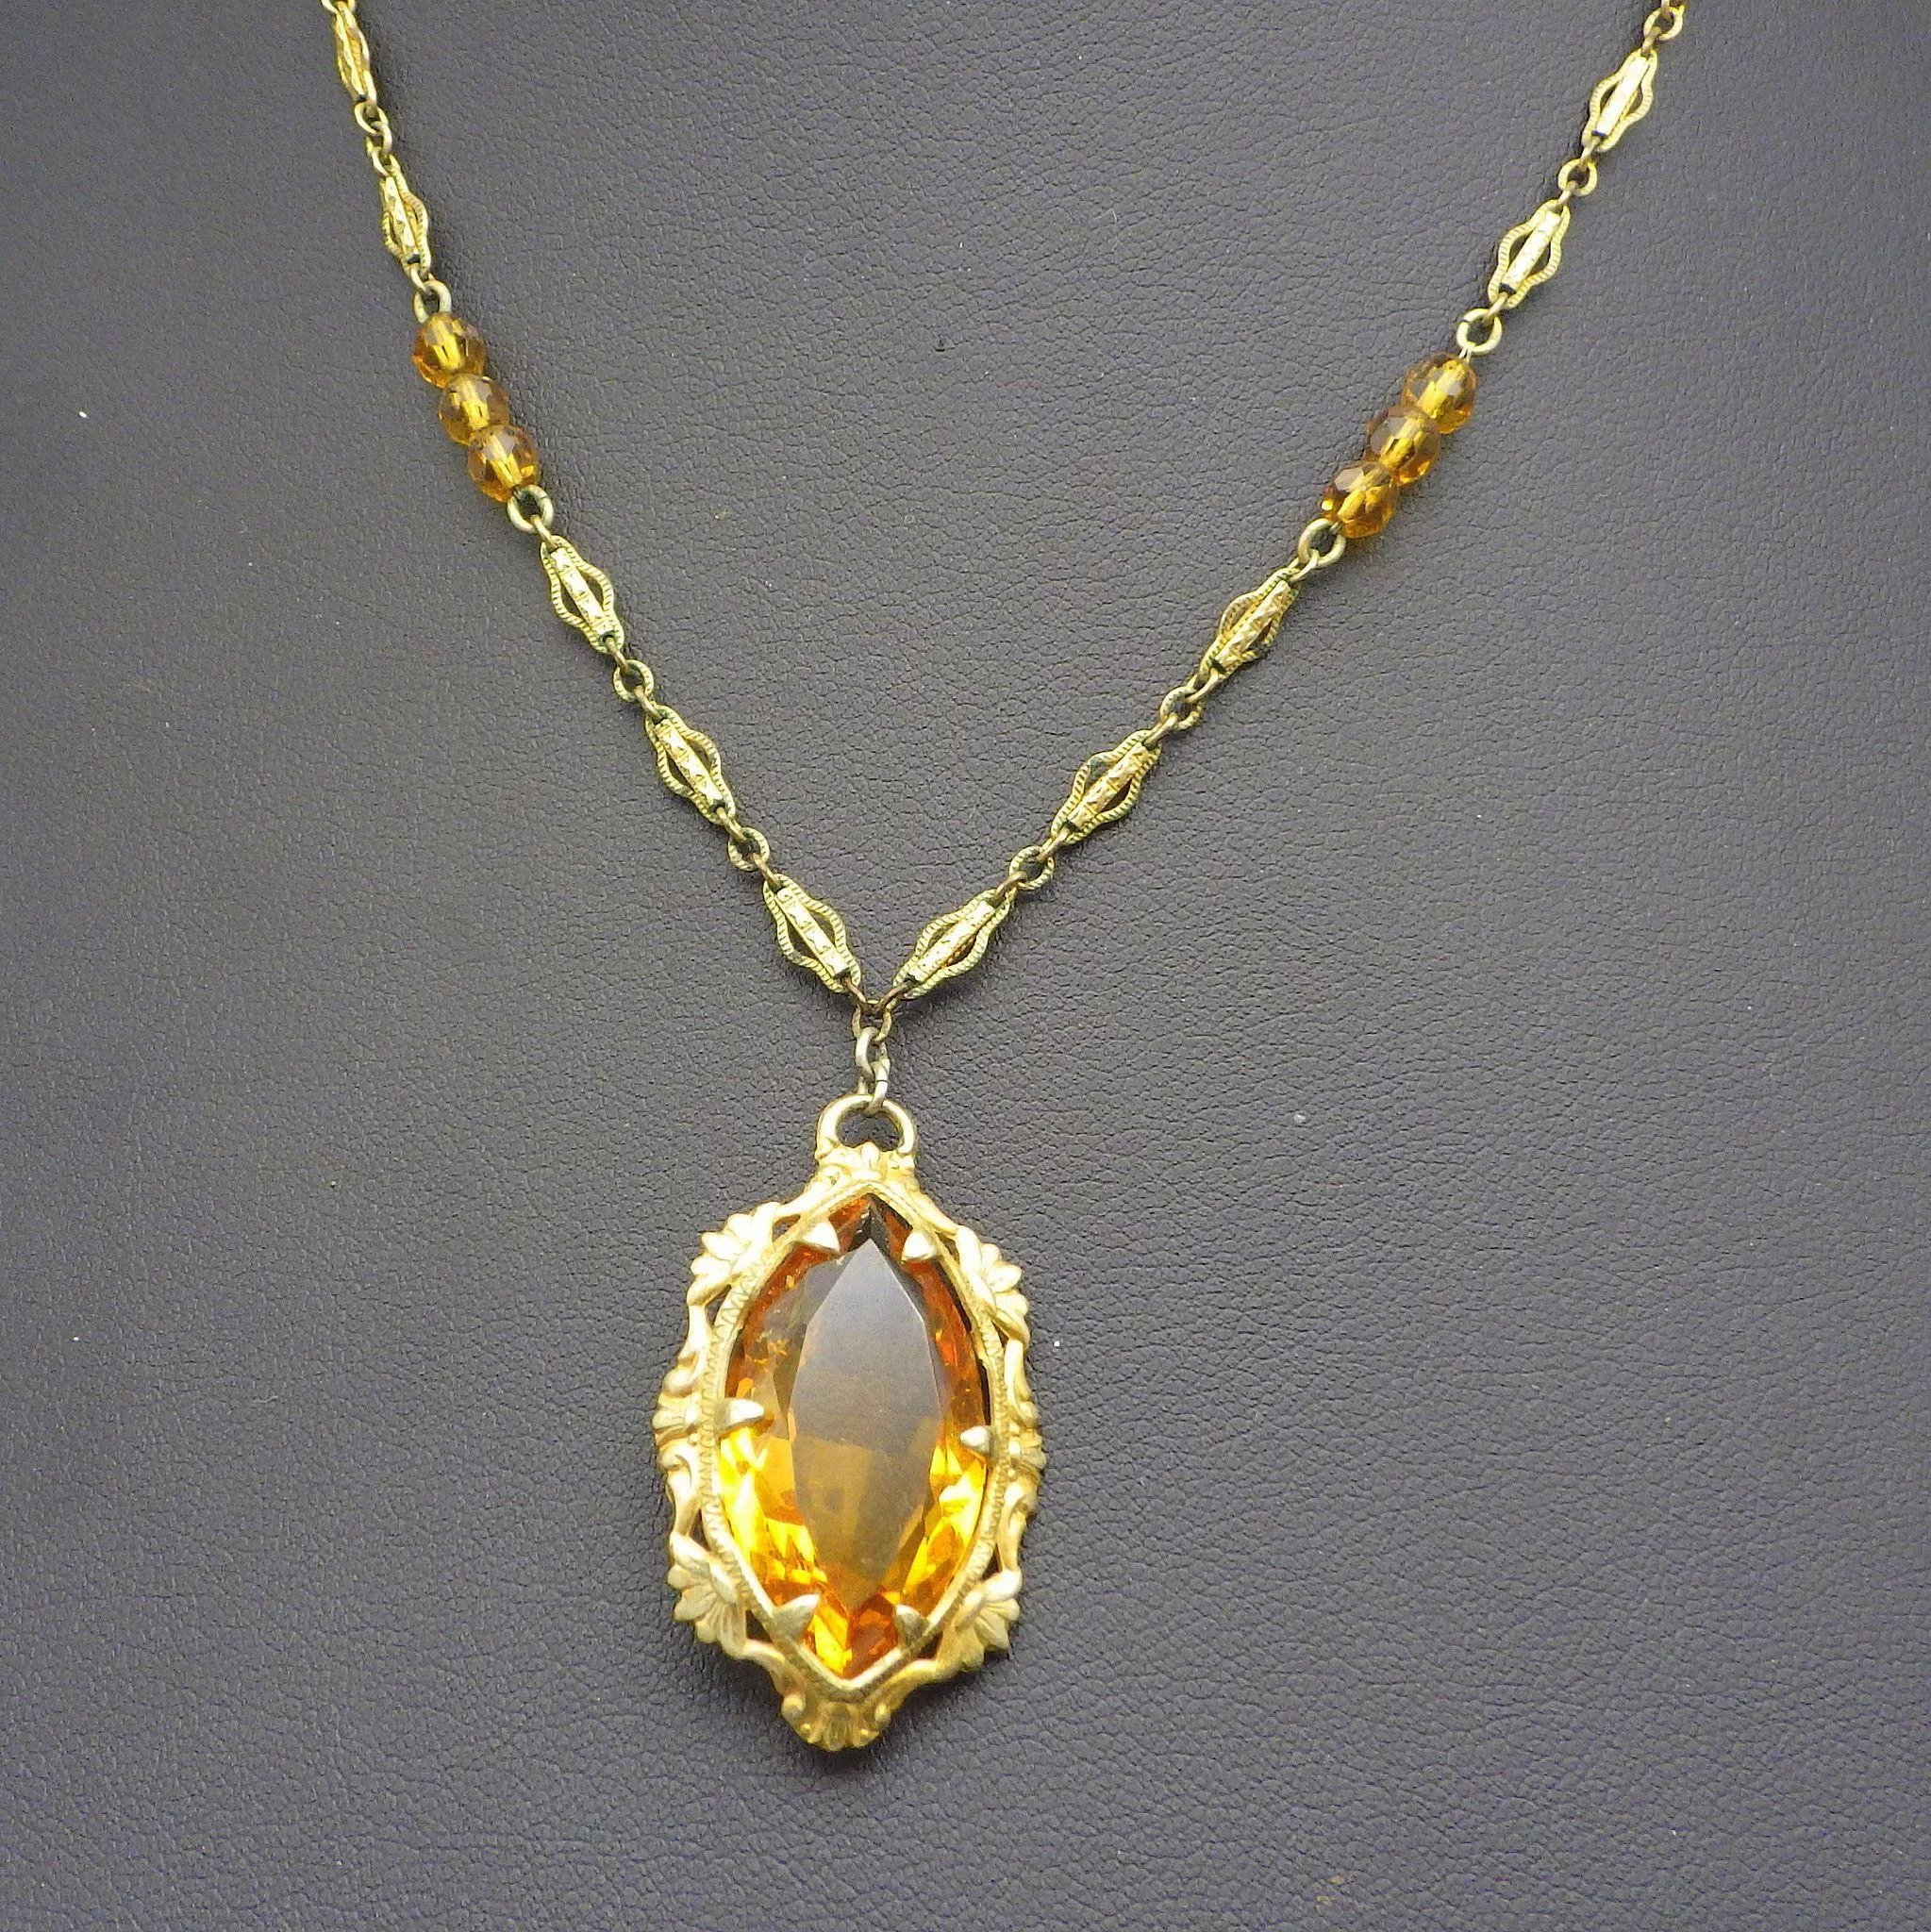 silver necklace gold citrine image products with sterling anita pendant jamieson yellow